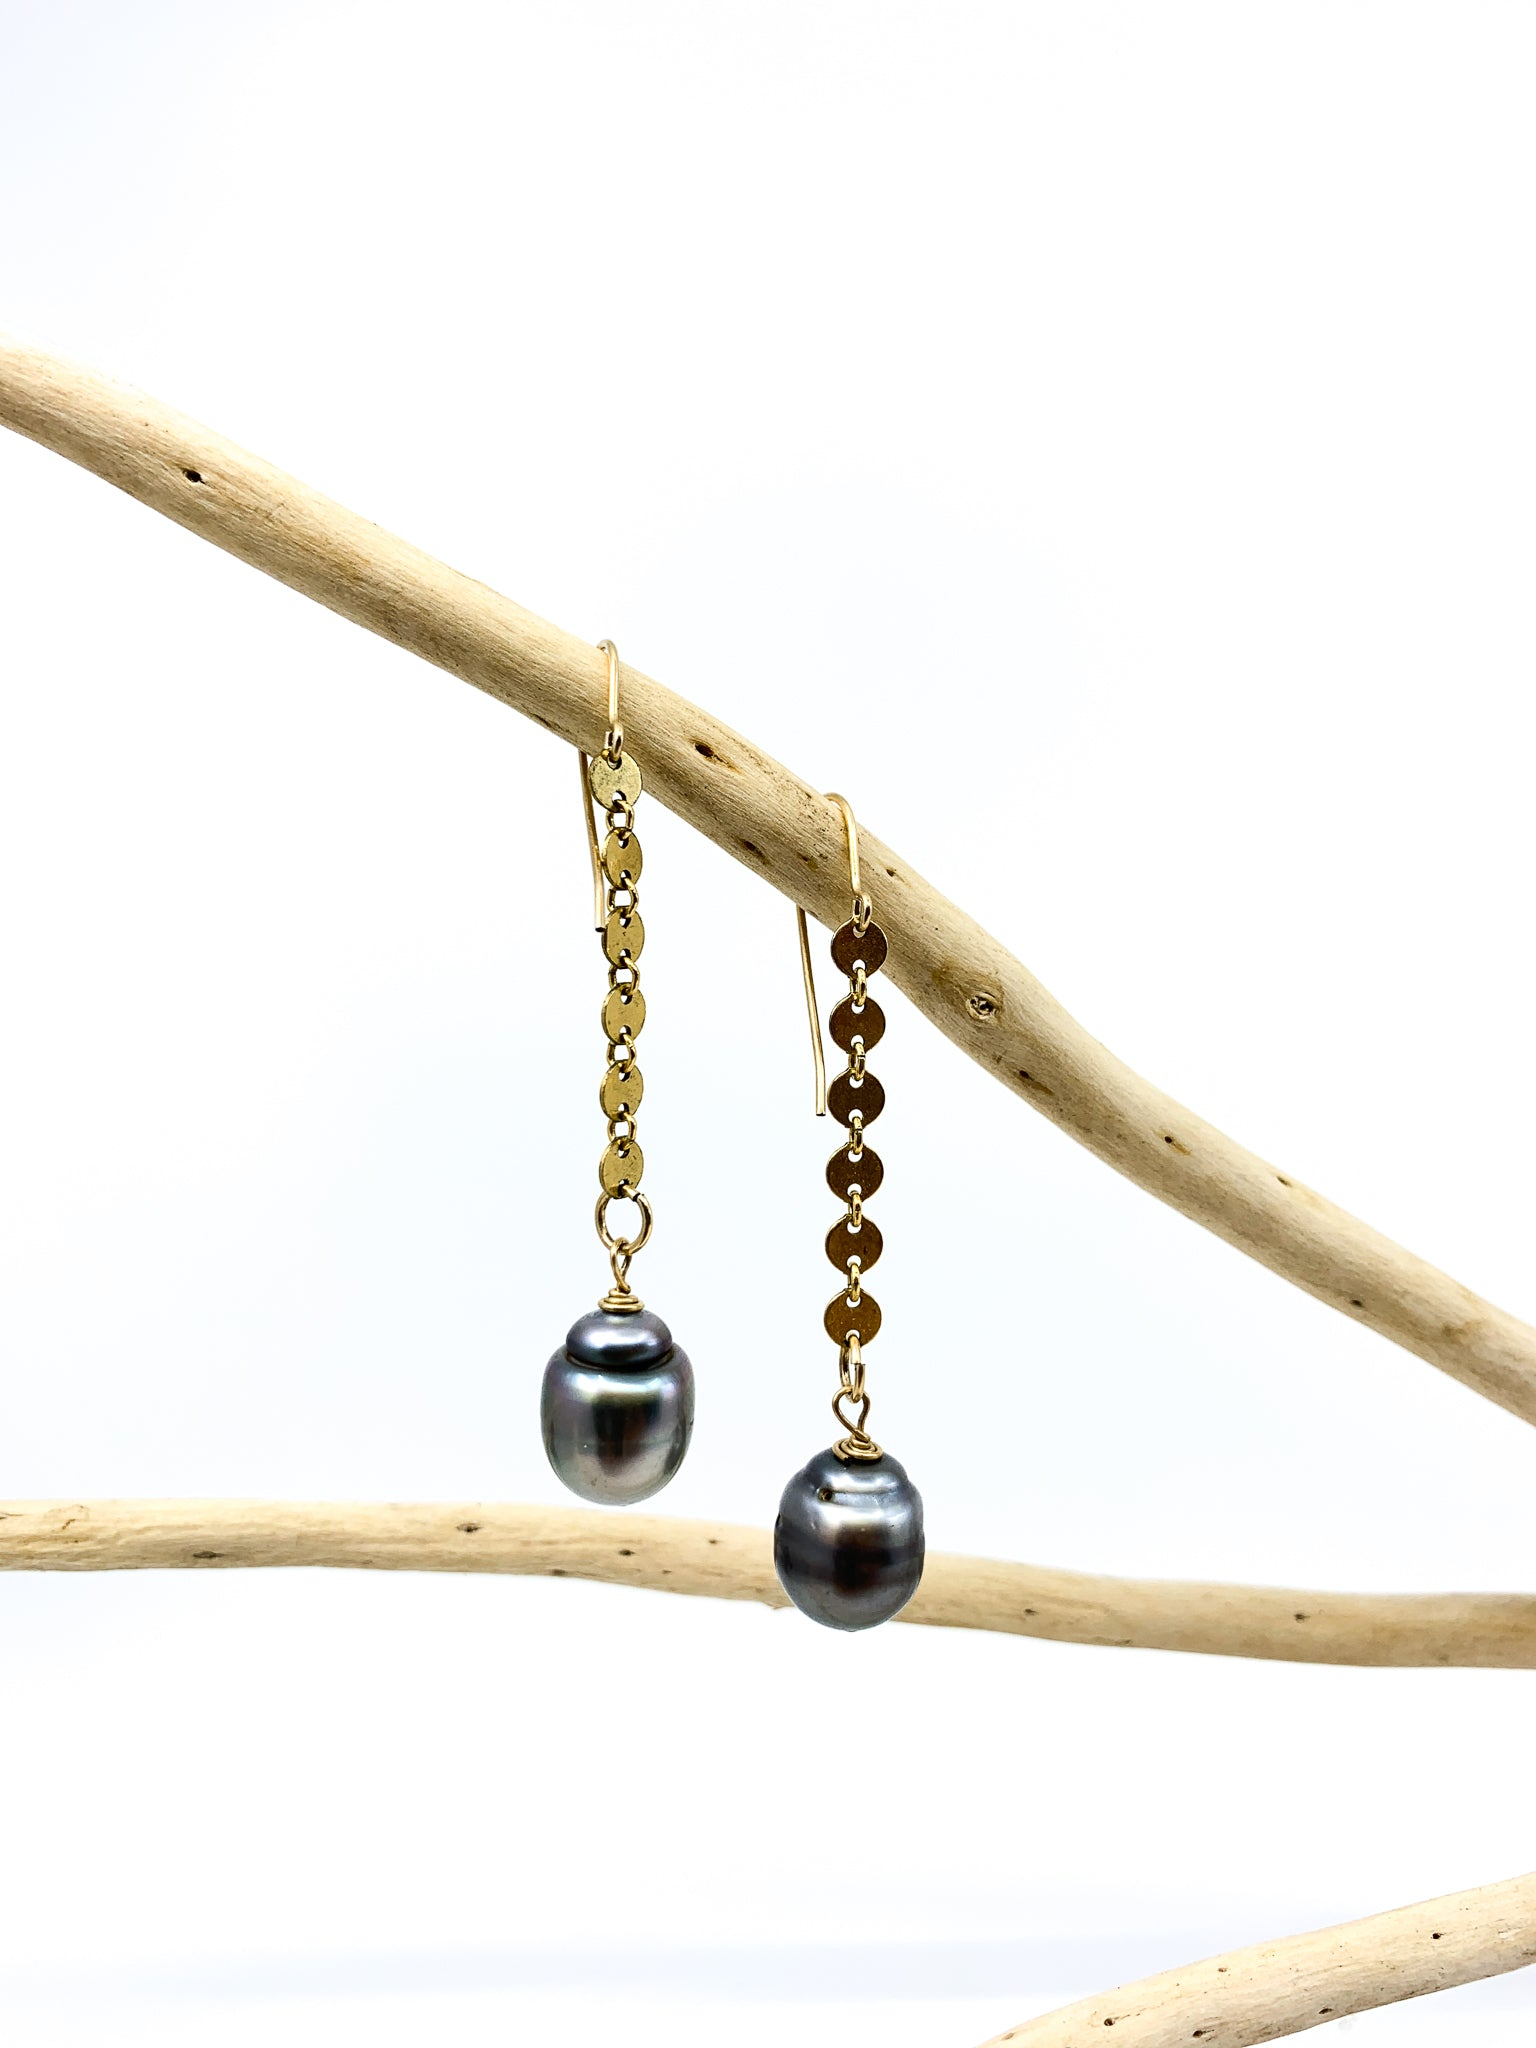 Tahitian pearl earrings with 14 karat gold fill chain by eve black jewelry made in Hawaii